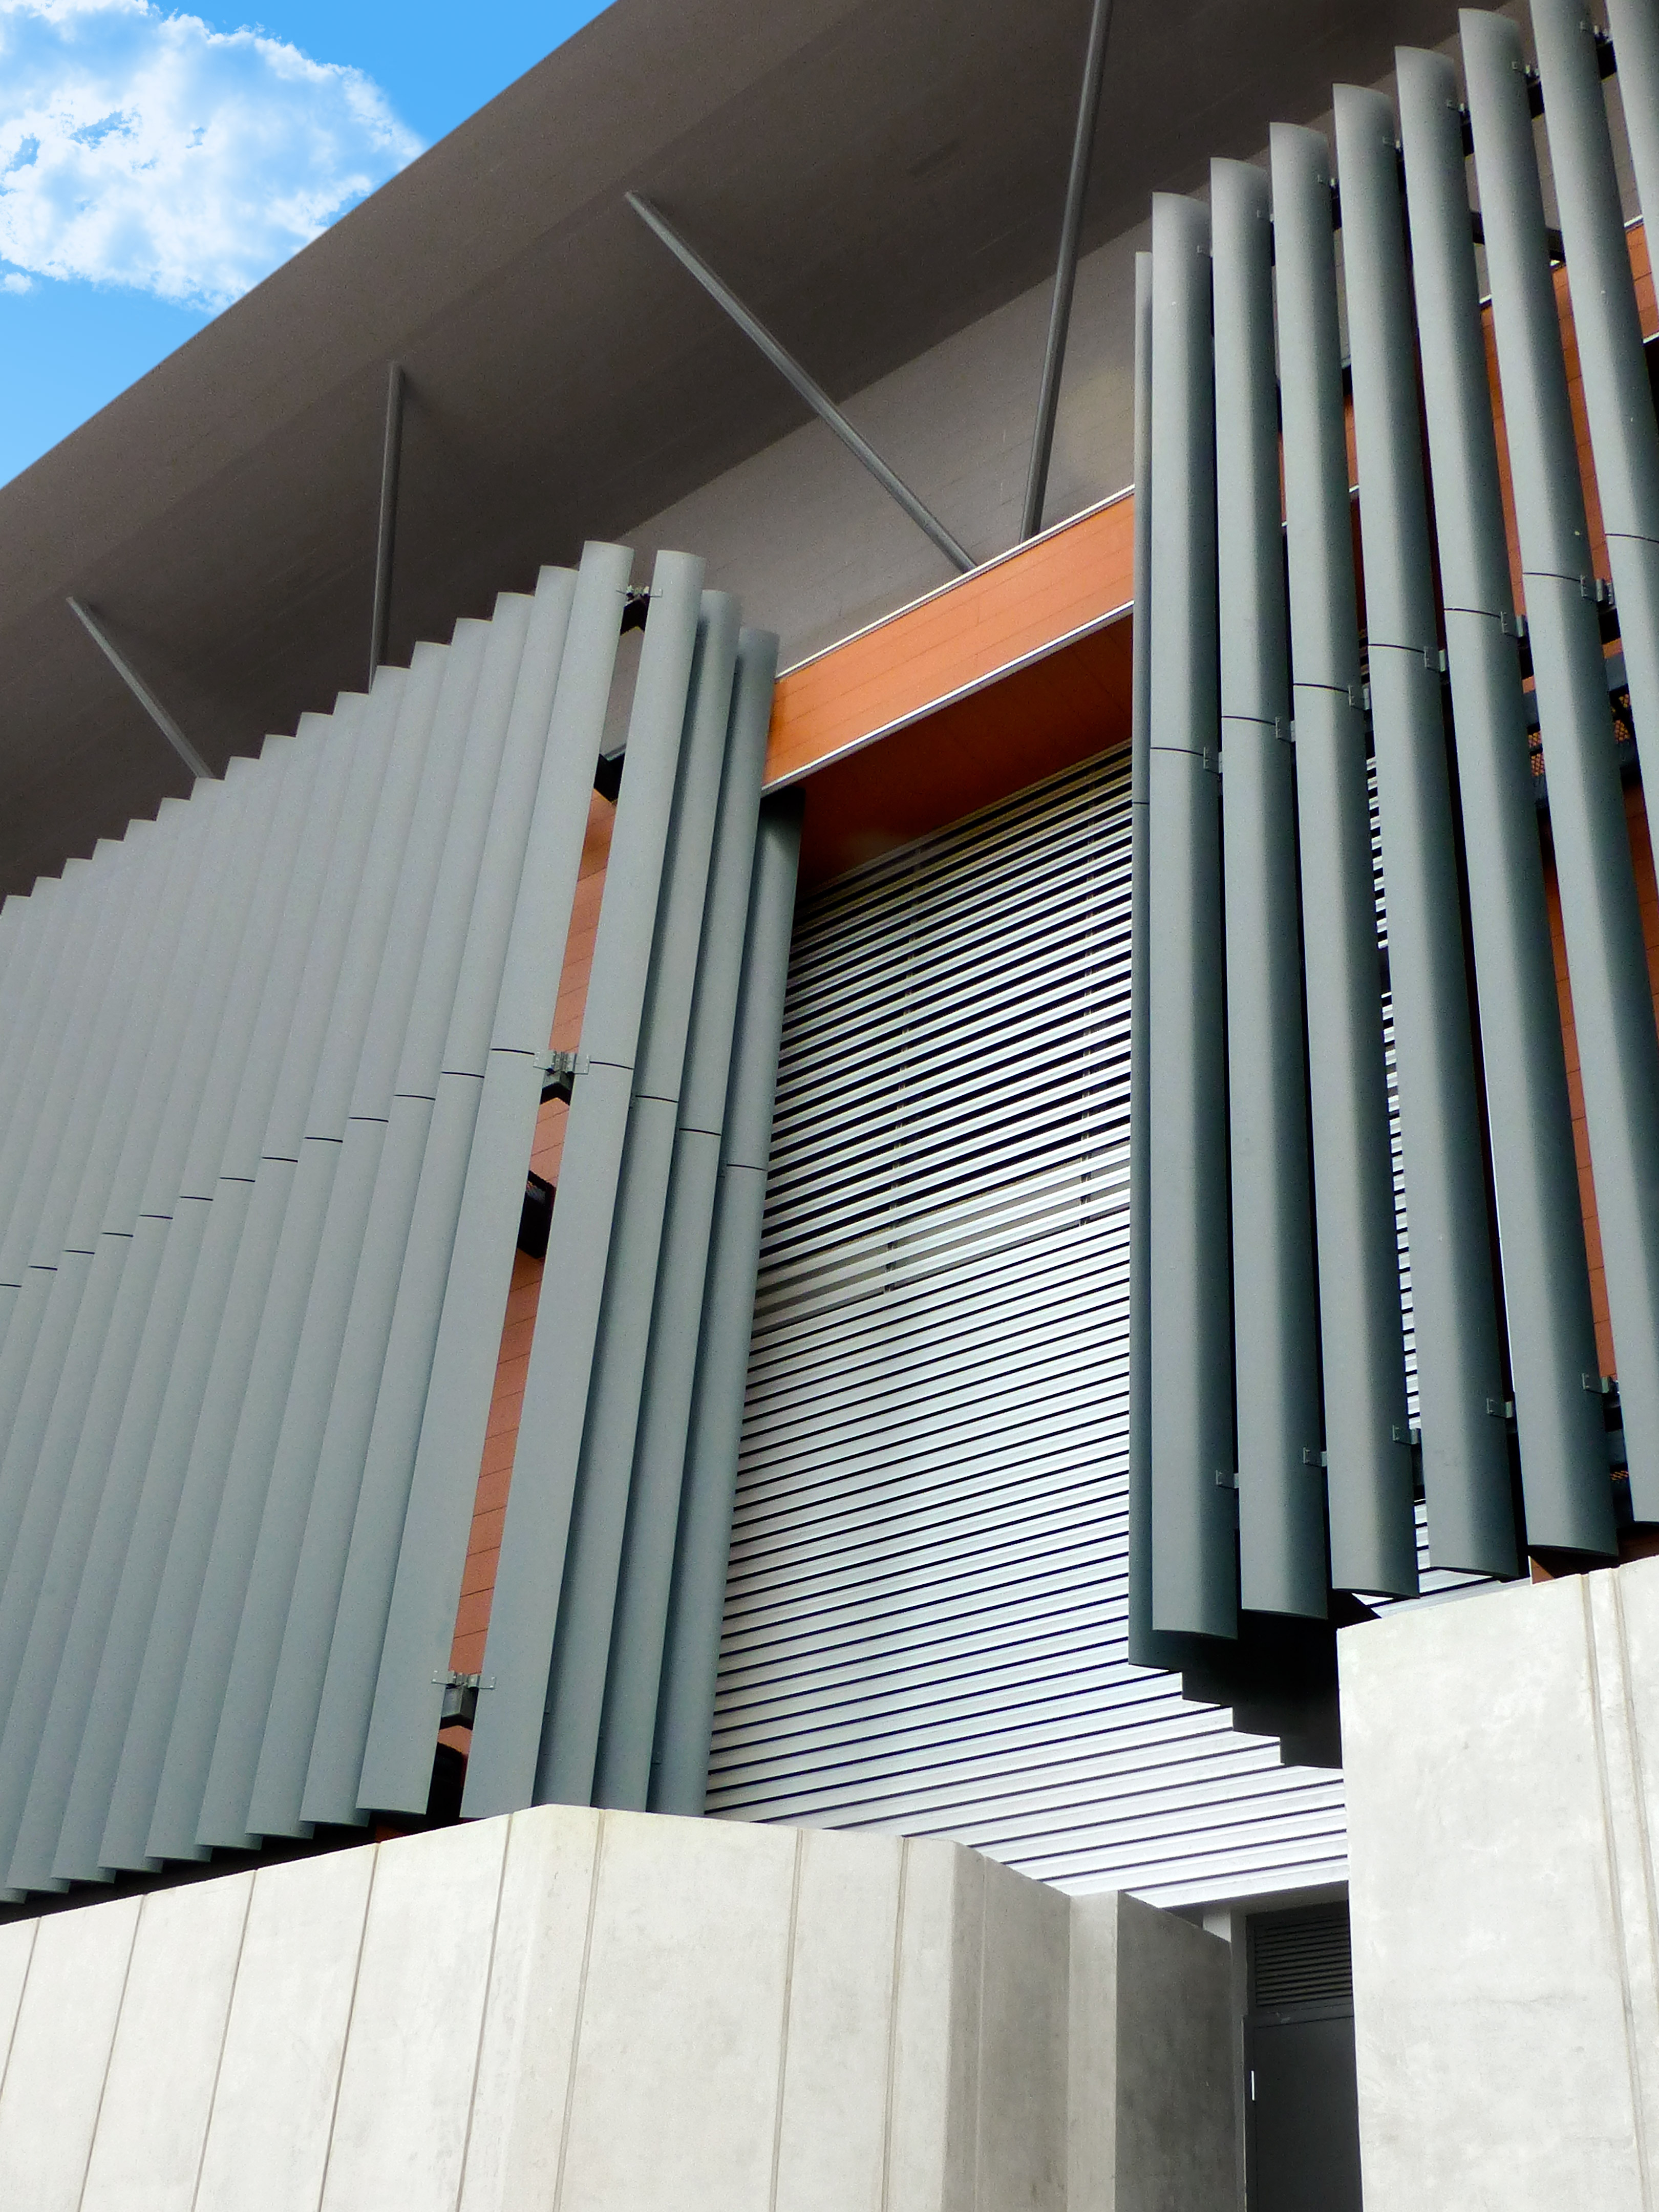 Installation of Louvers for the protection of schools in Costa Rica